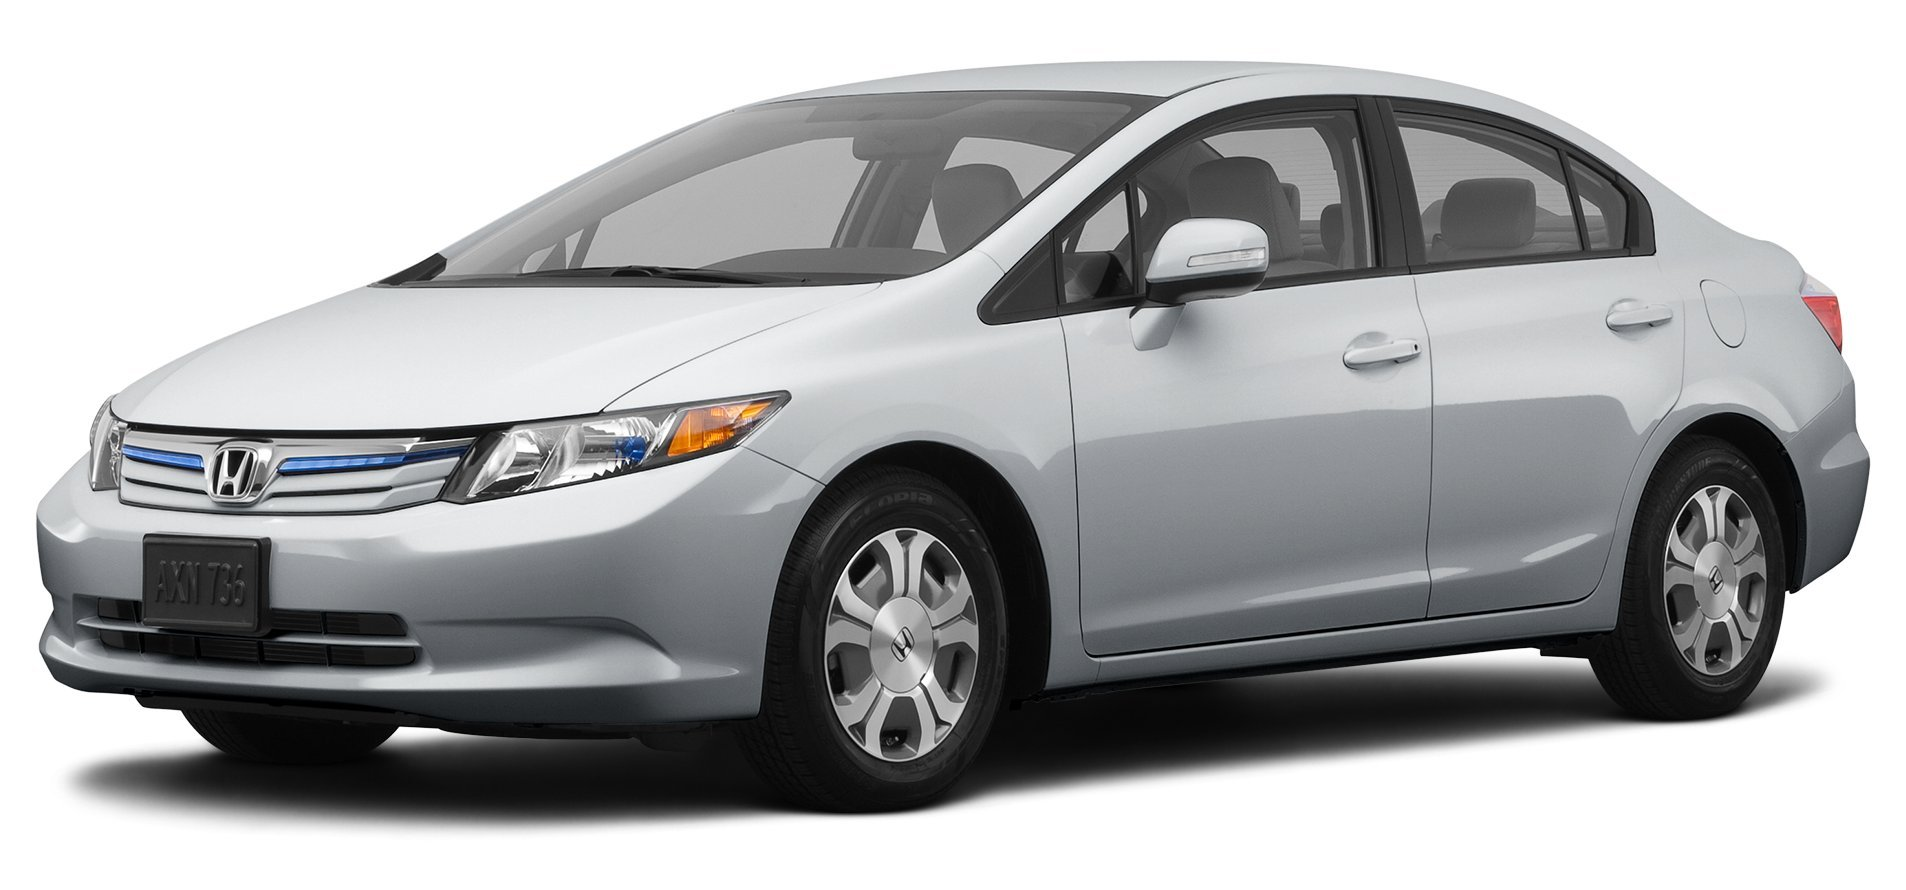 2012 Honda Civic, 4-Door Sedan 4-Cylinder CVT ...